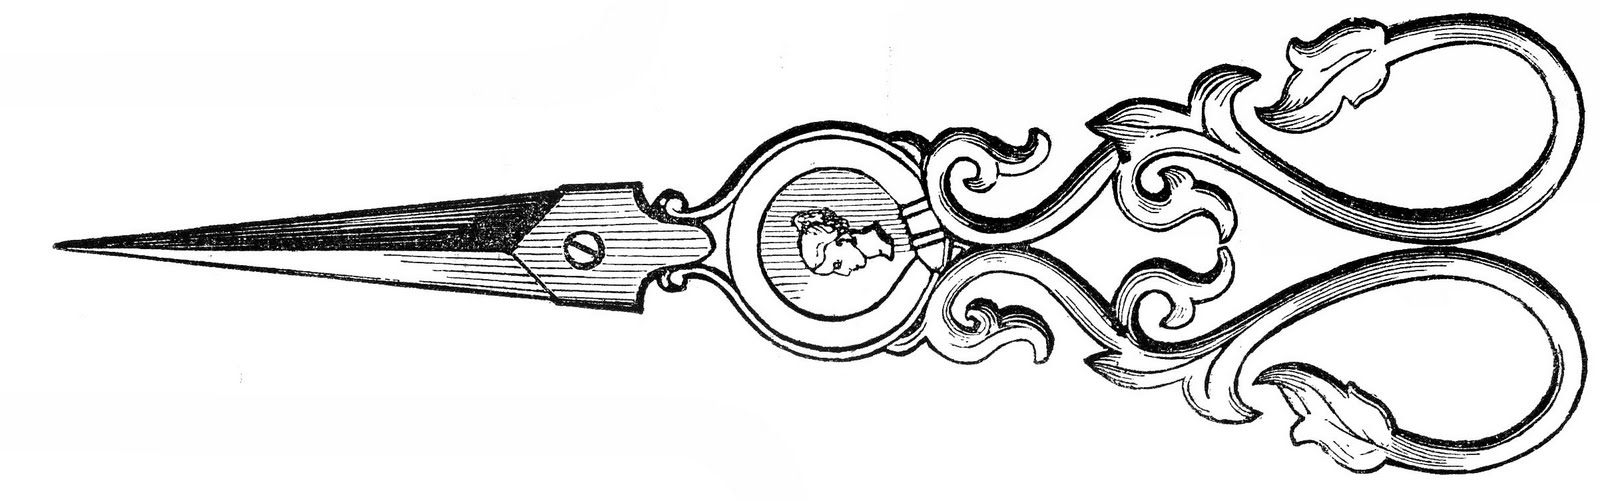 Free Vintage Clip Art - Ladies Ornate Sewing Scissors - The ...